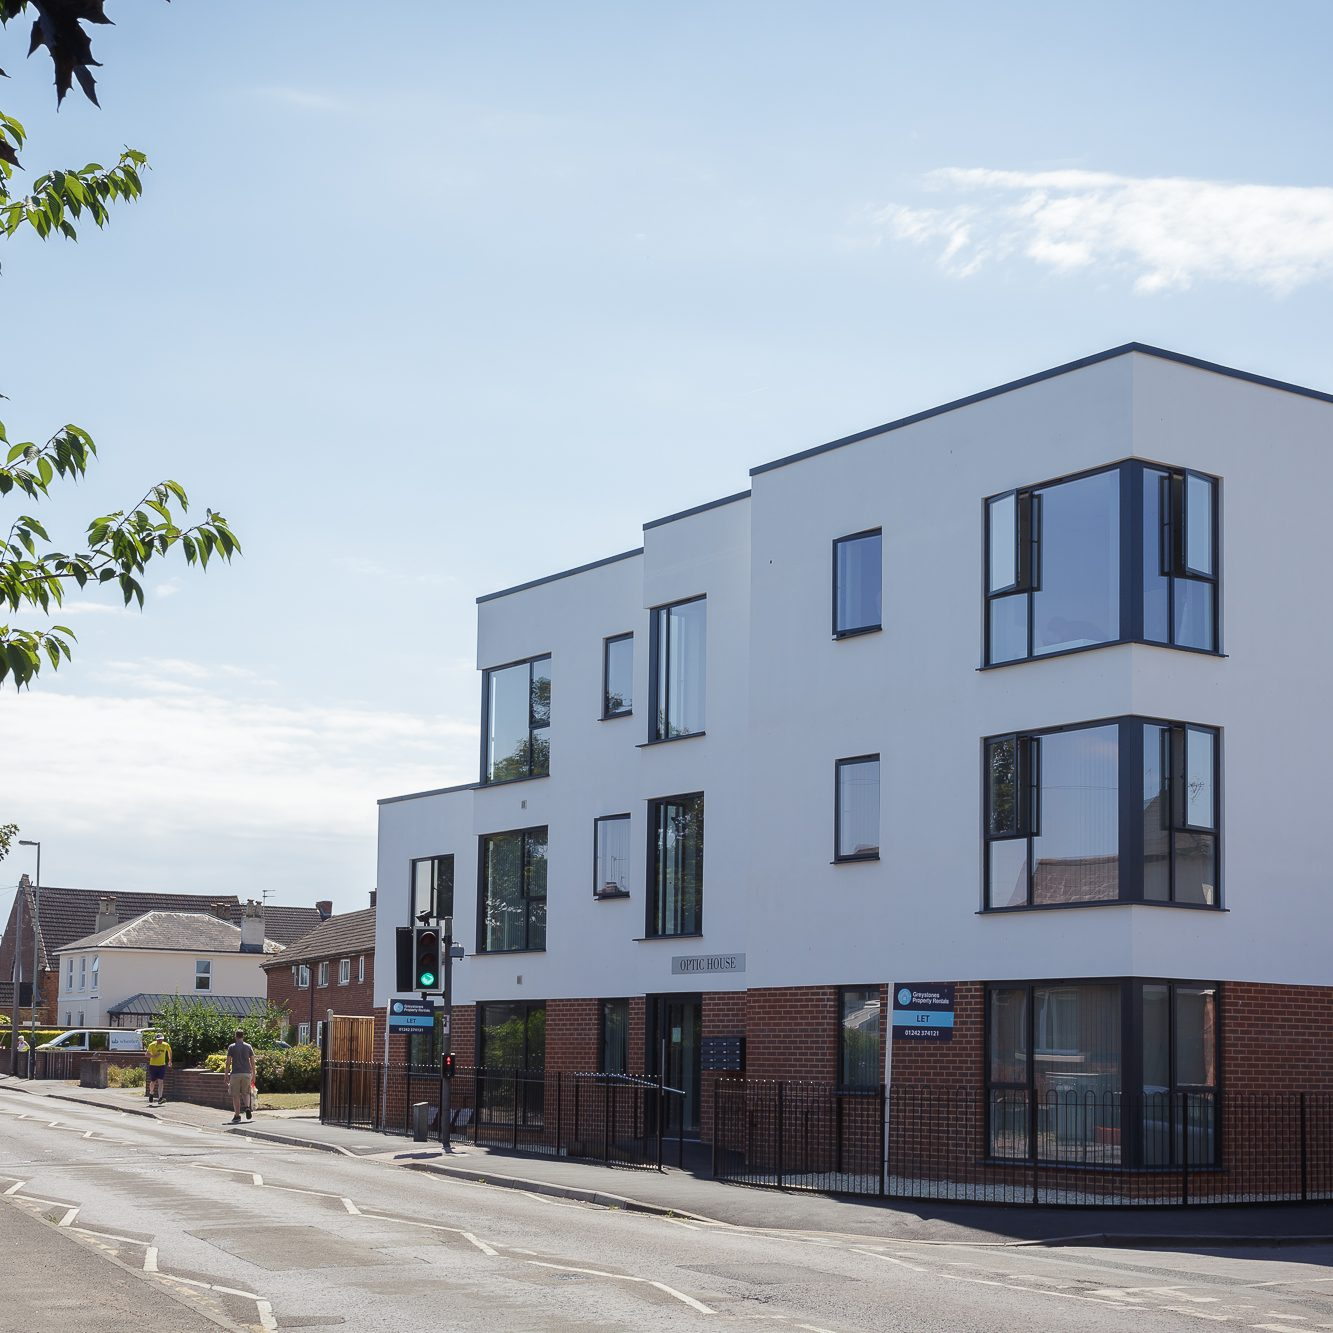 A former disused pub site turned into much needed flats